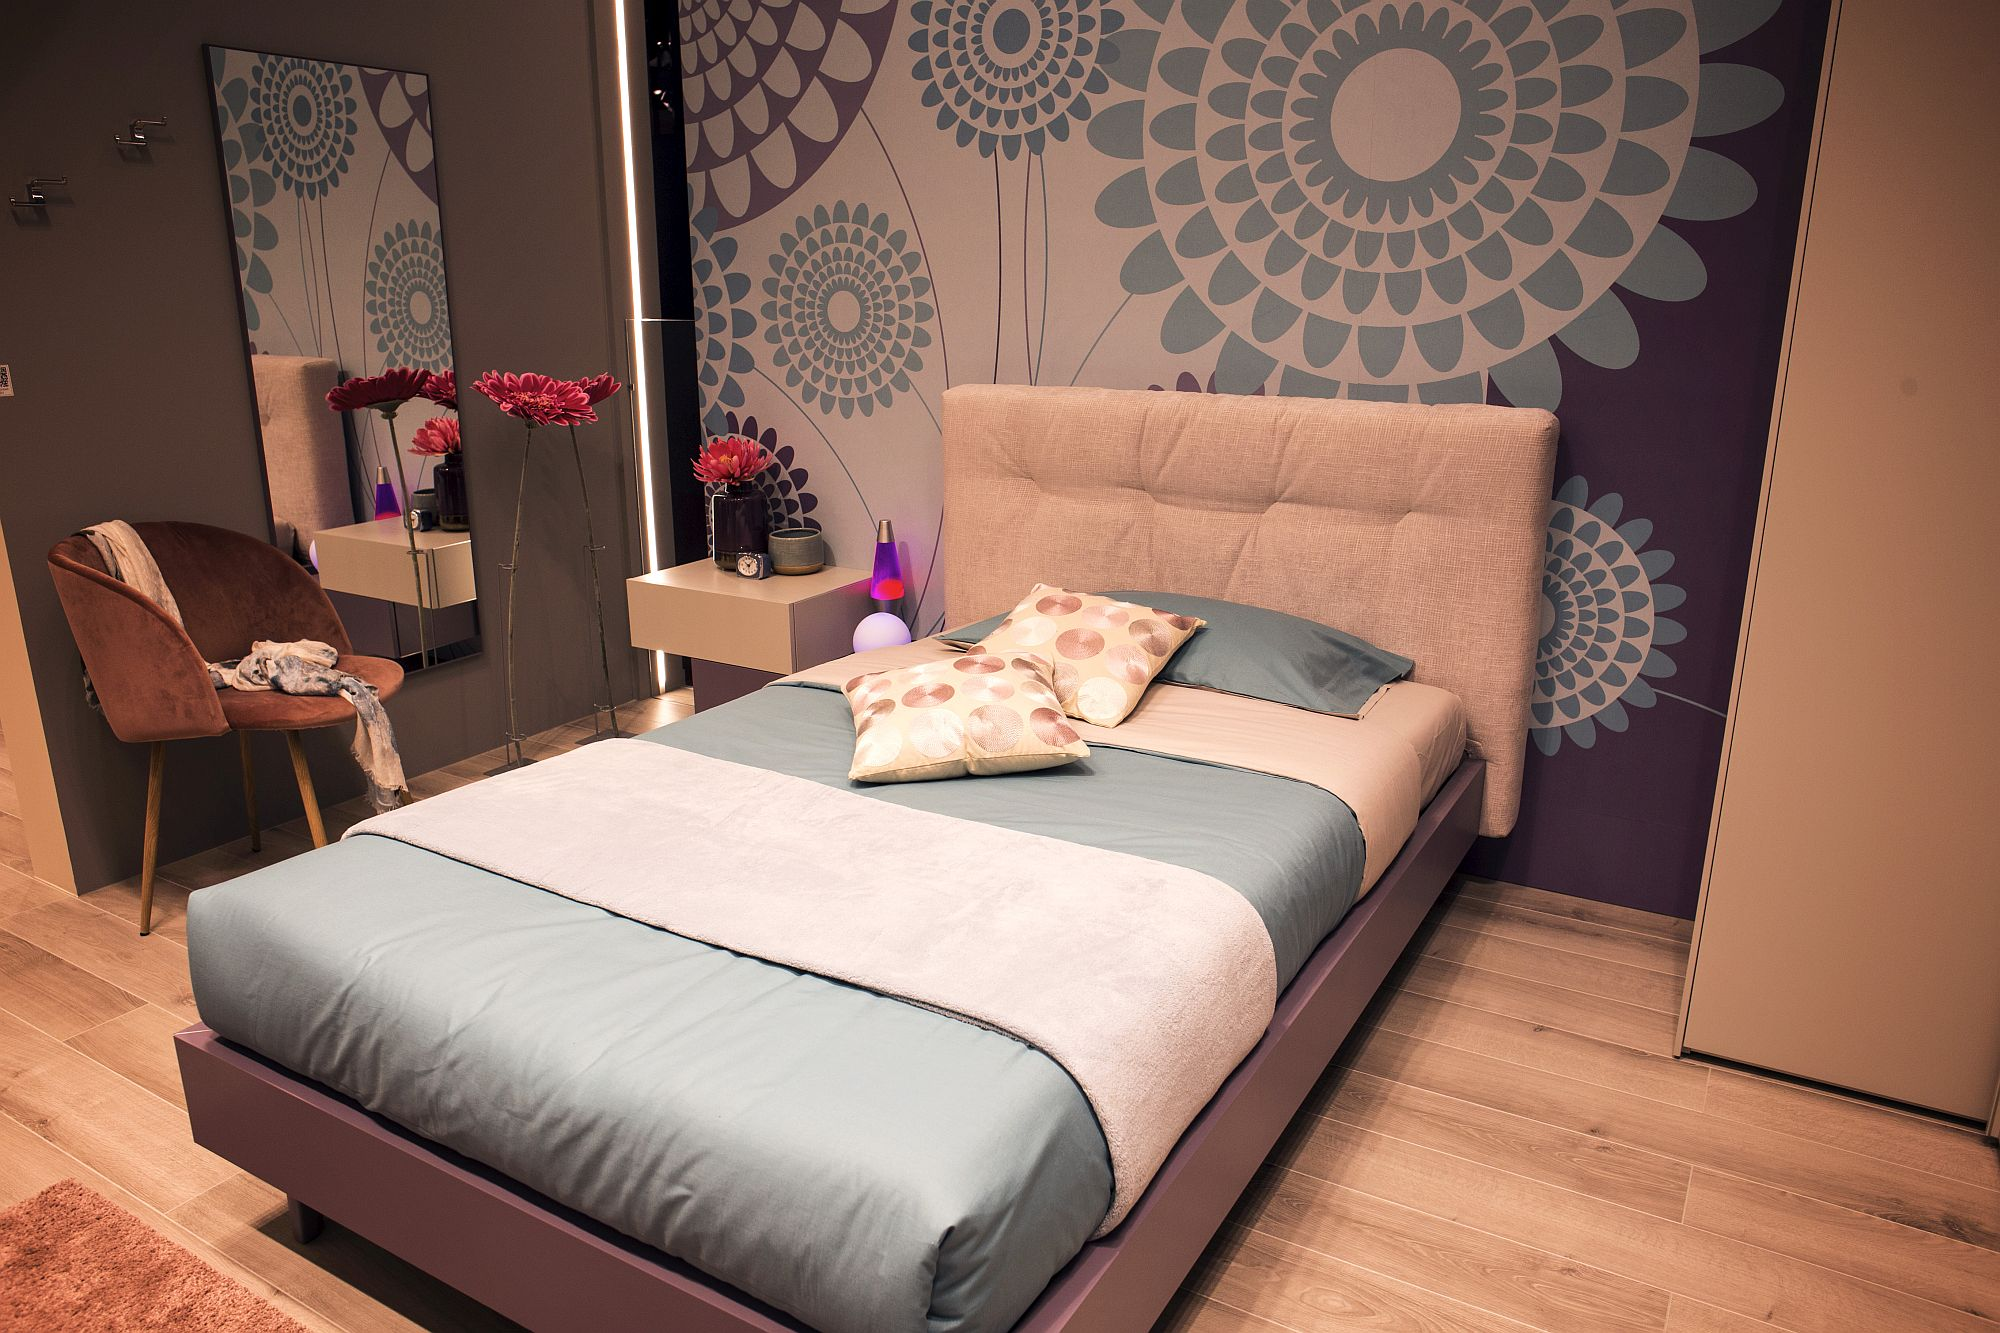 Flowers-and-the-pattern-of-the-backdrop-add-feminine-charm-to-the-girls-bedroom